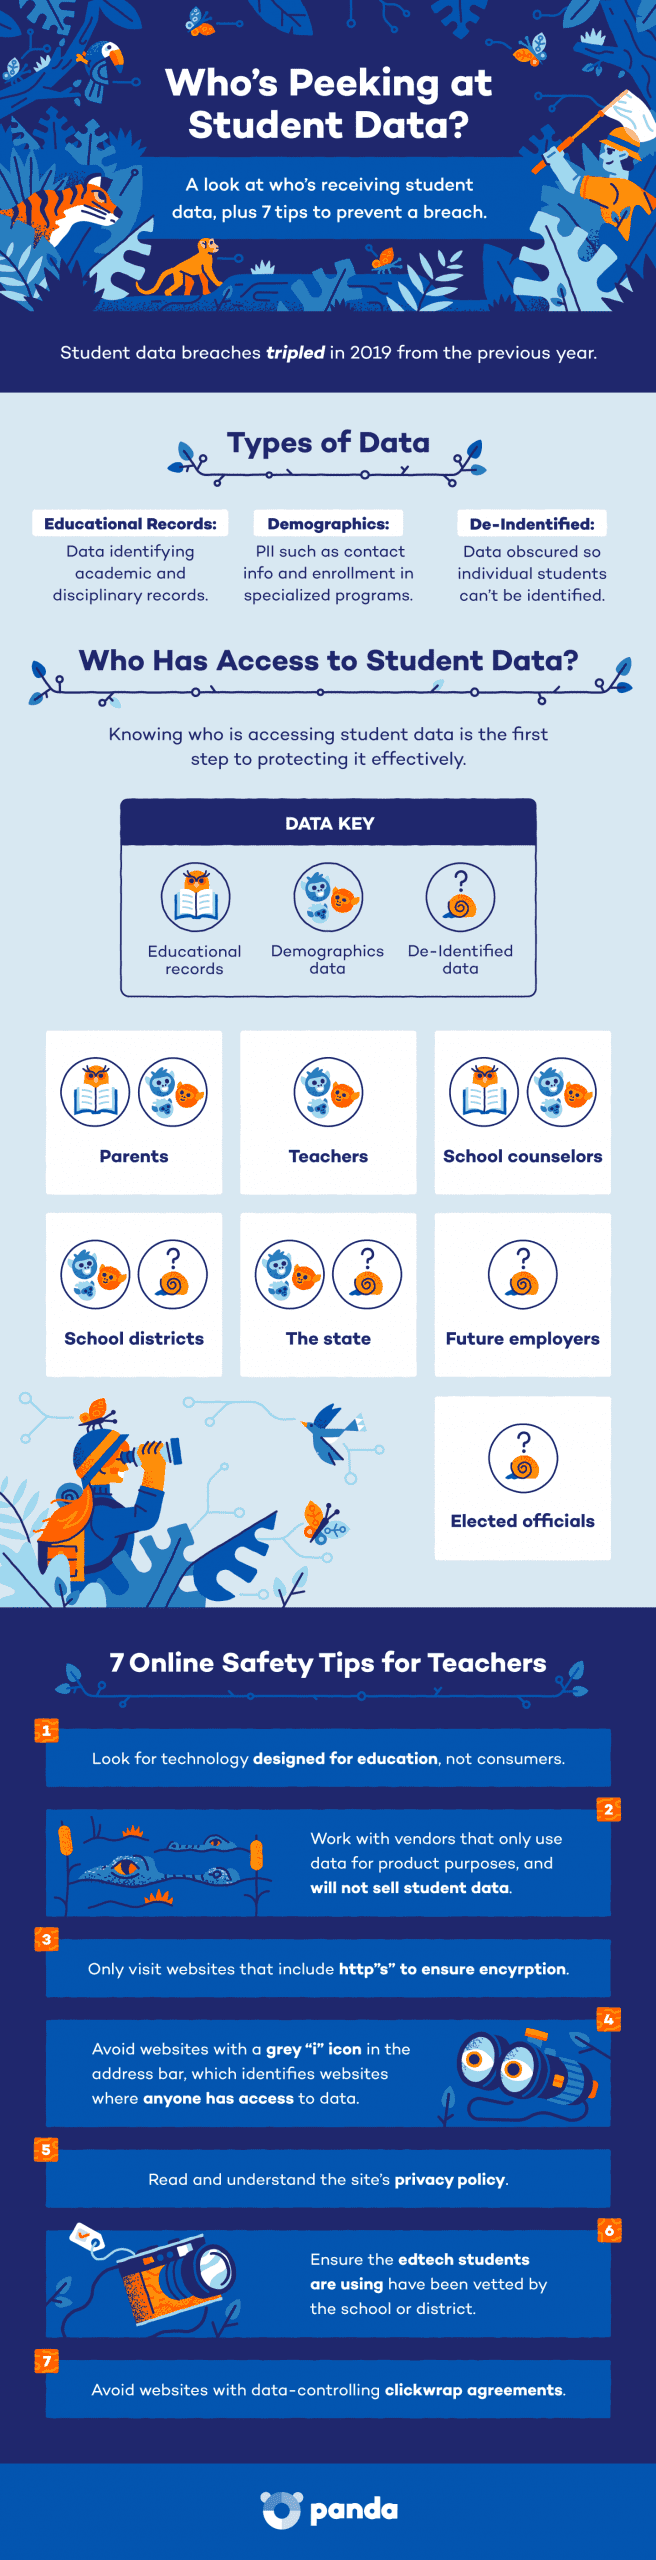 Who's Peeking At Student Data? #infographic